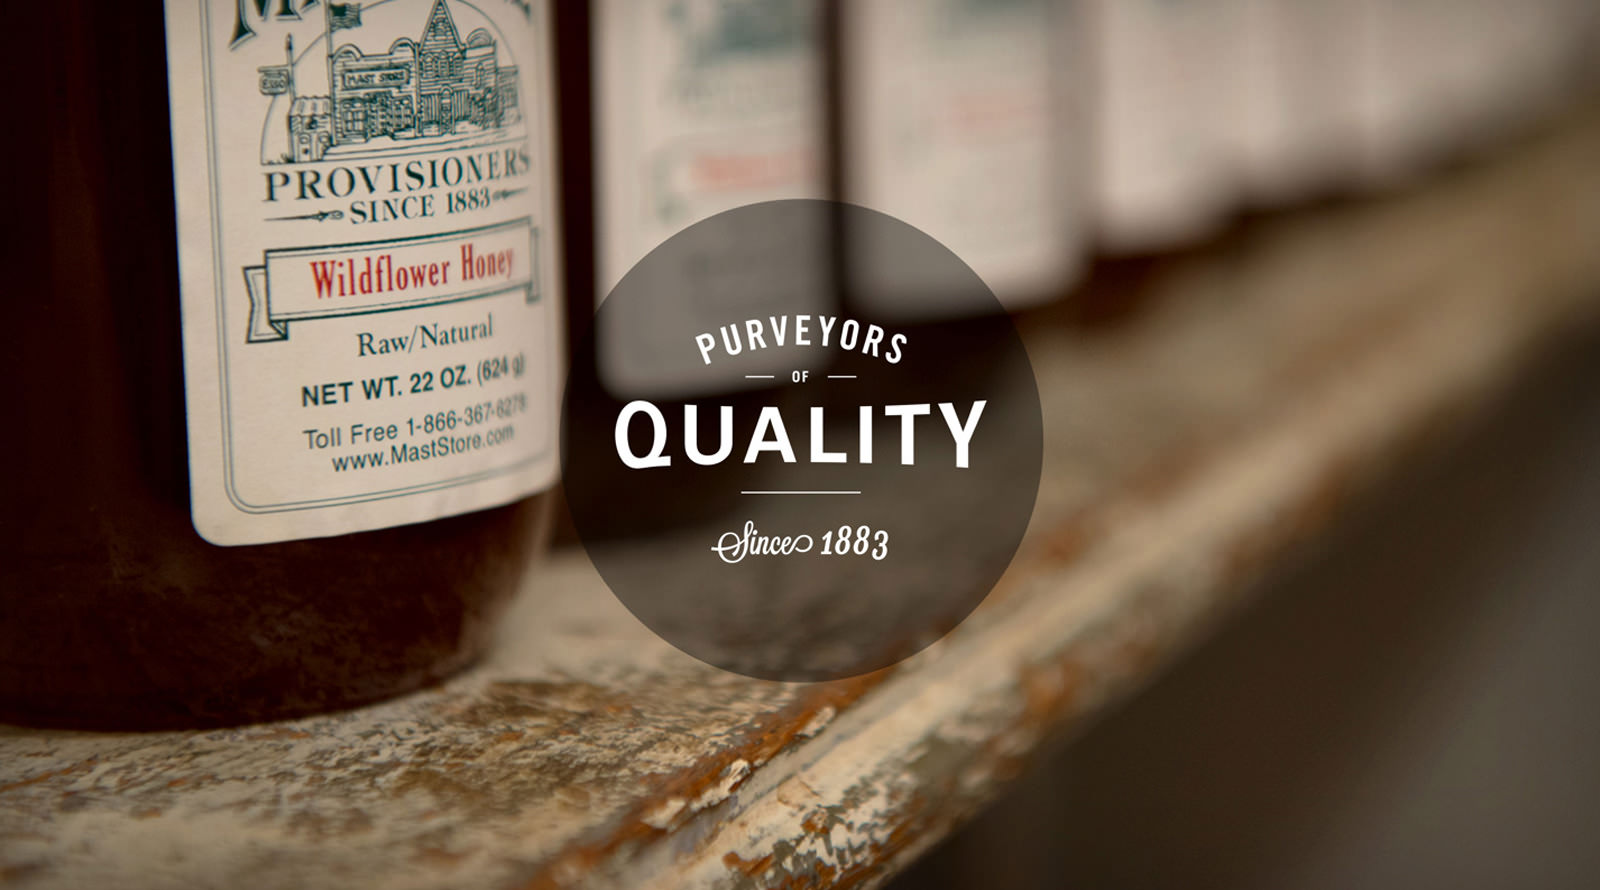 Purveyors of Quality